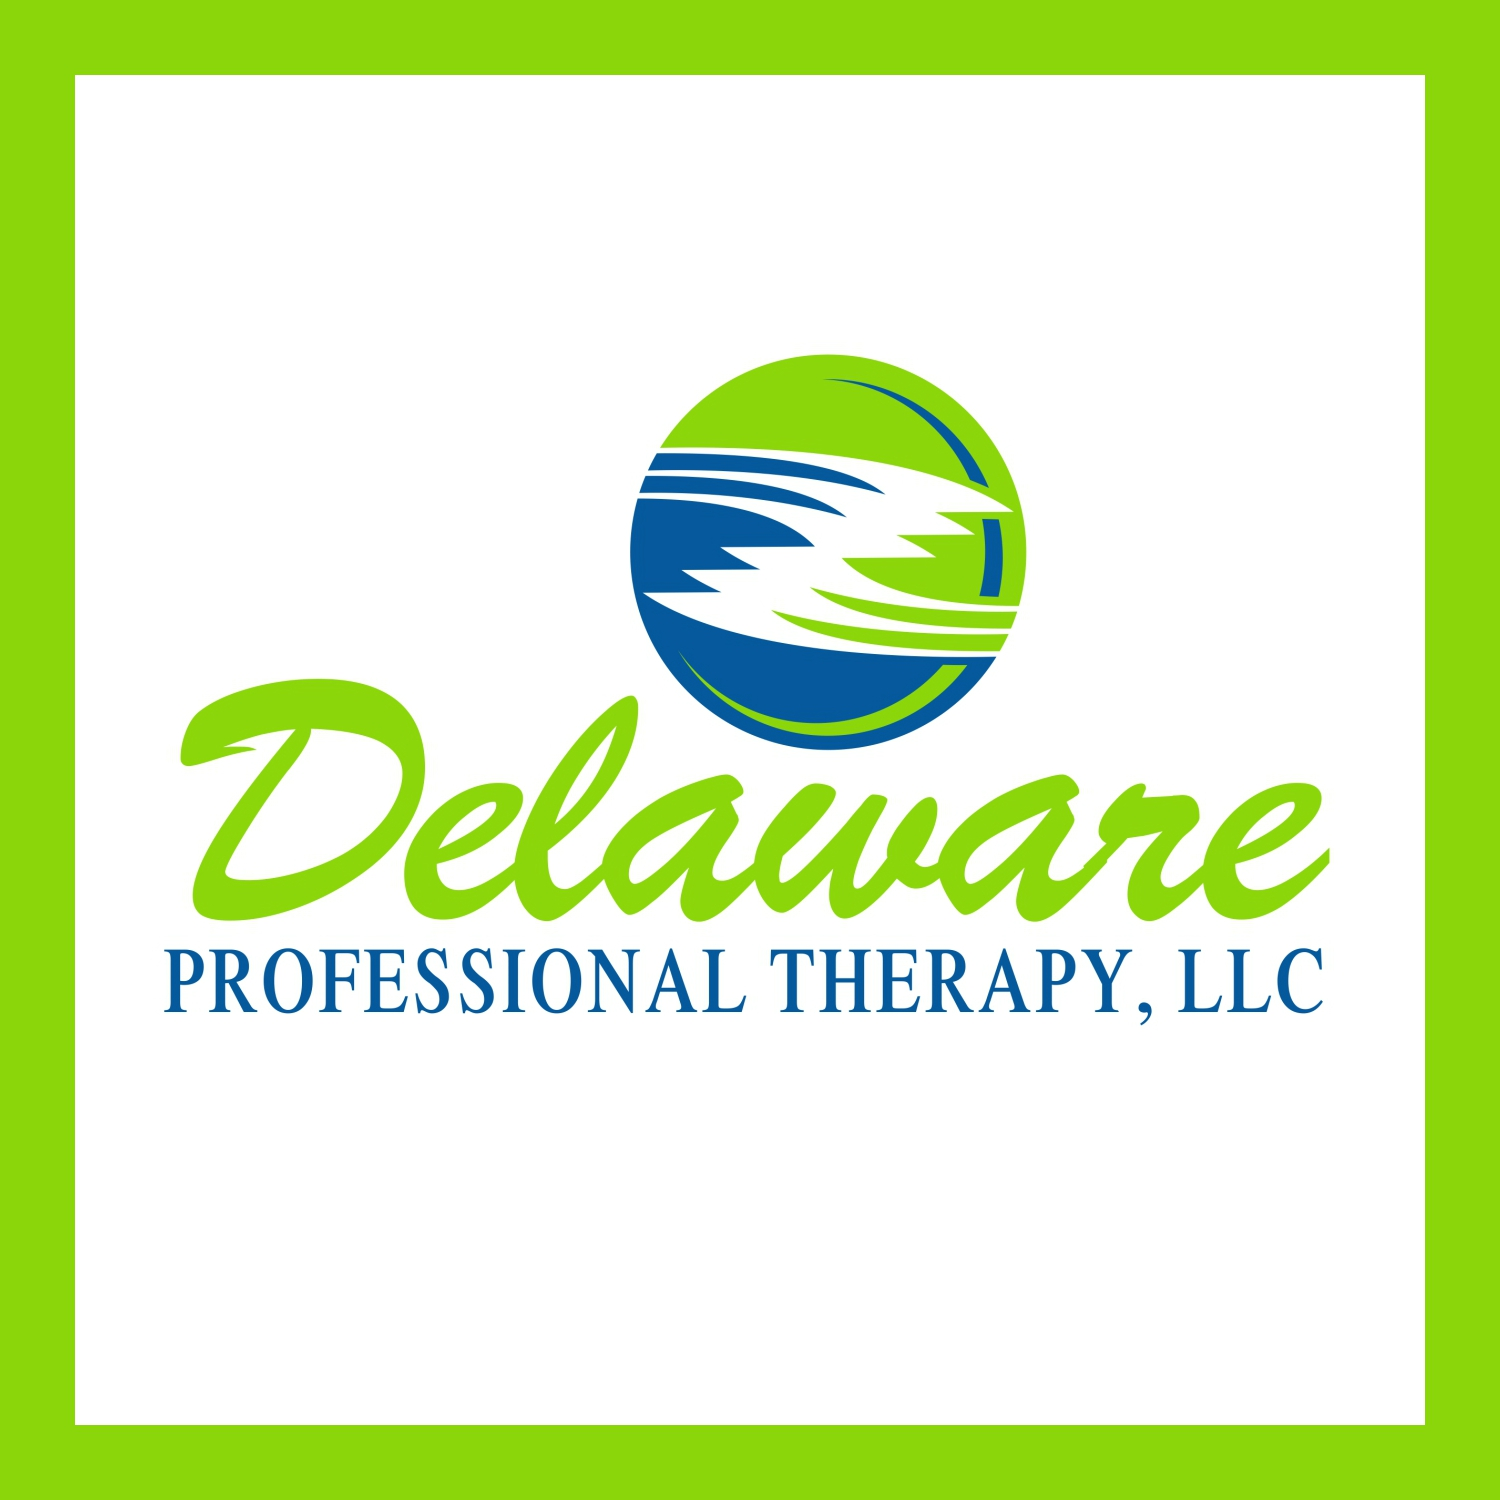 Delaware Professional Therapy